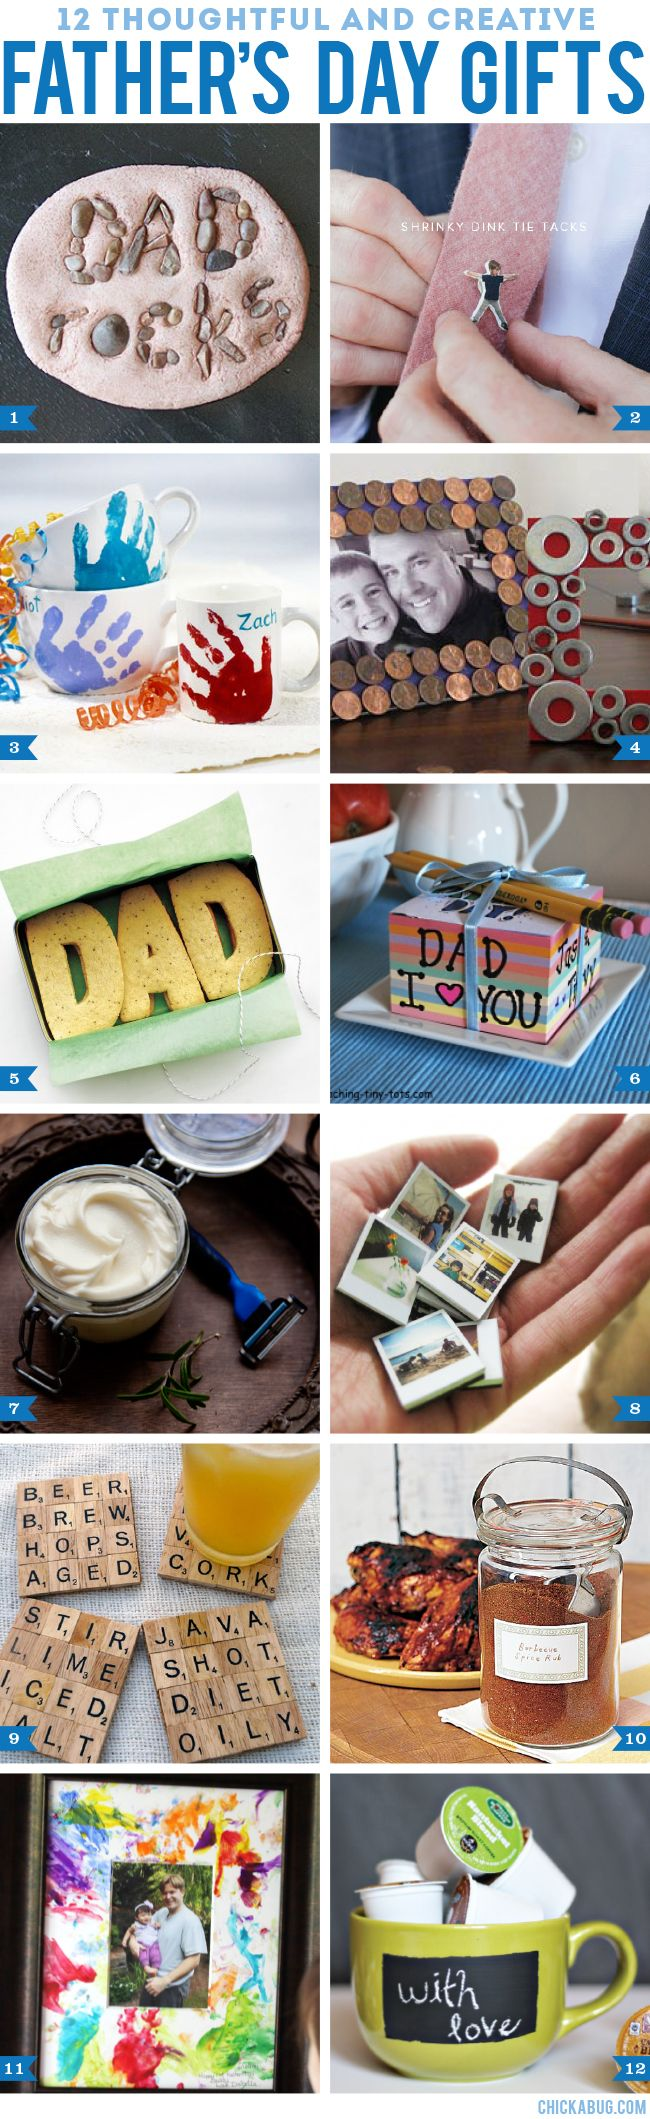 12 thoughtful and creative DIY Father's Day gifts #fathersday...